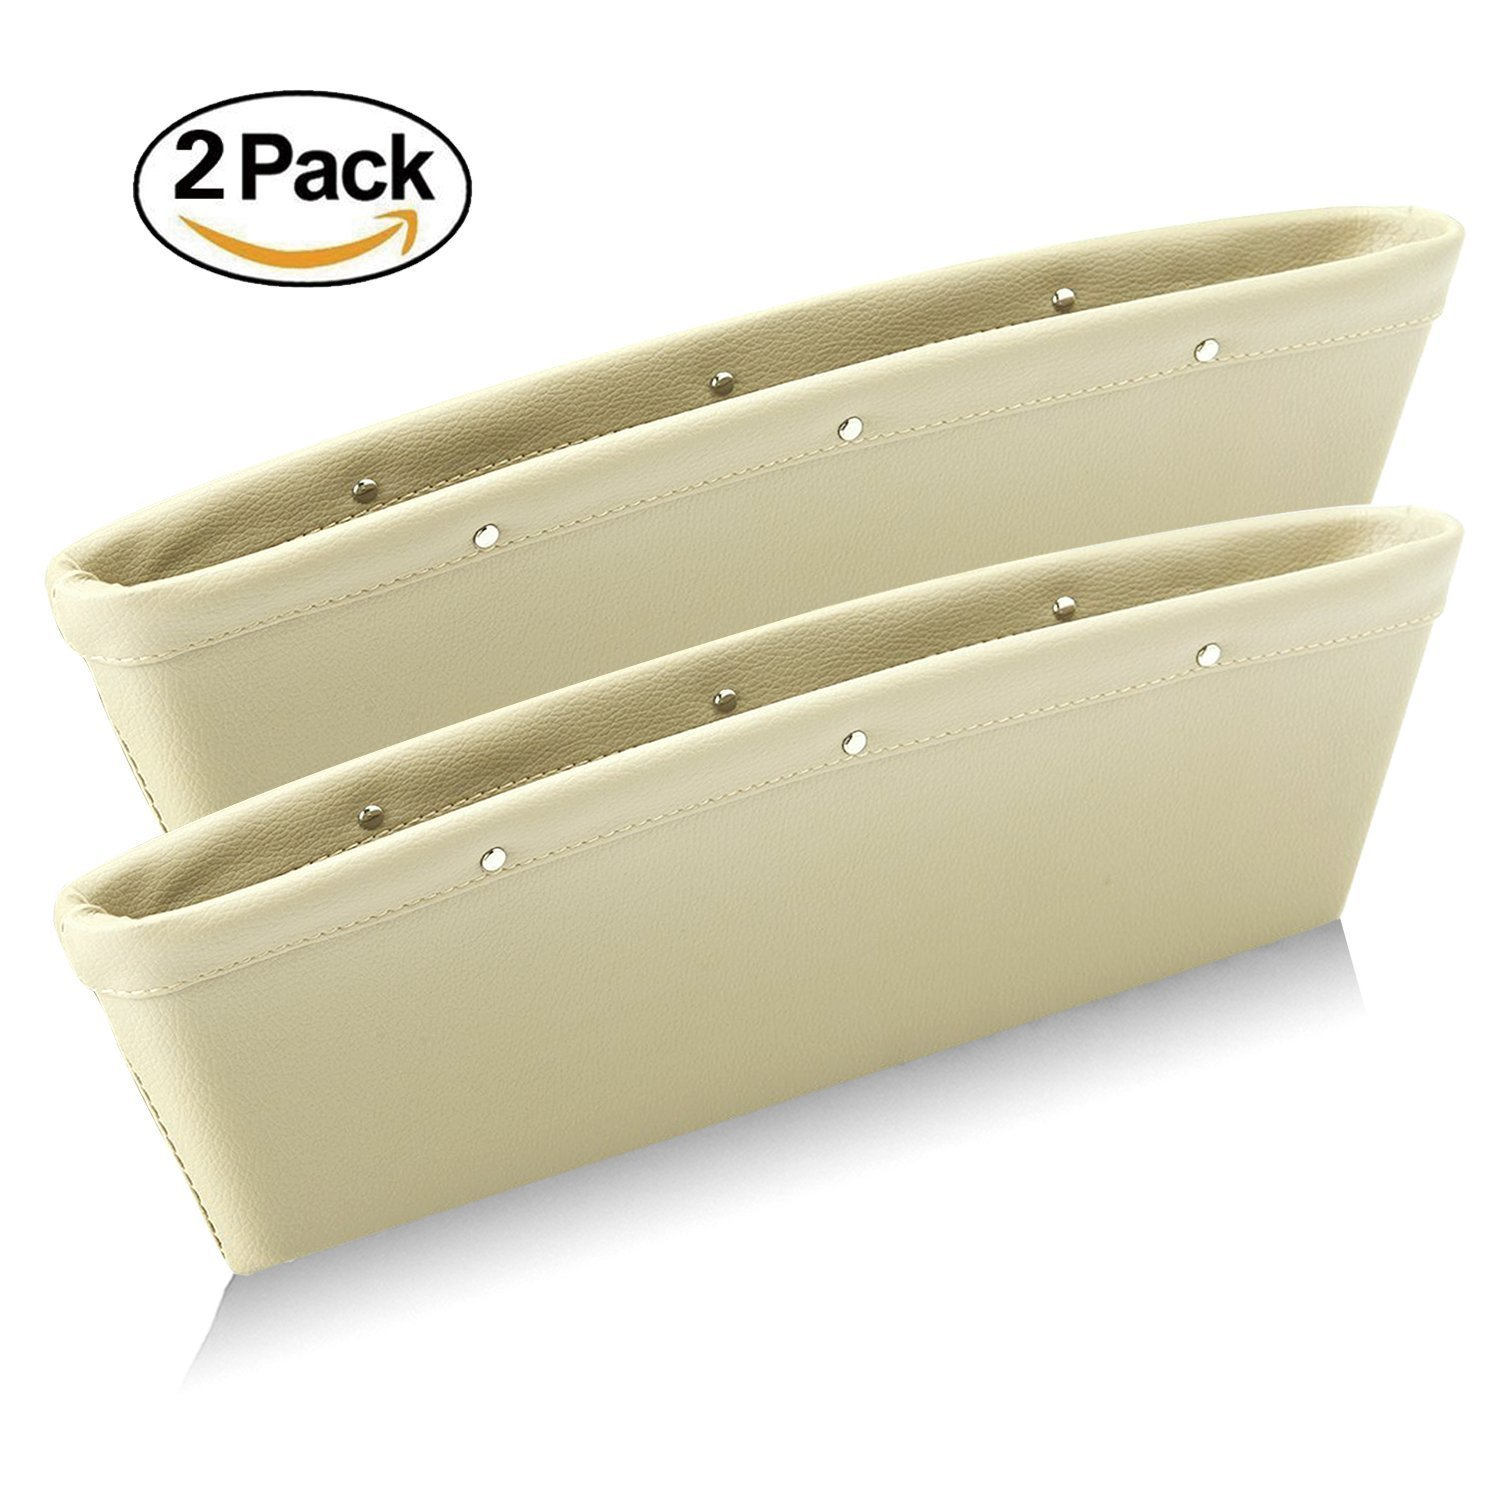 Leather Car Seat Gap Filler, Fubarbar Car Seat Side Console Slit Caddy Catcher Storage Box Pad Pocket Premium Quality Leather Stop Before Drop (Beige, 2 Pack)